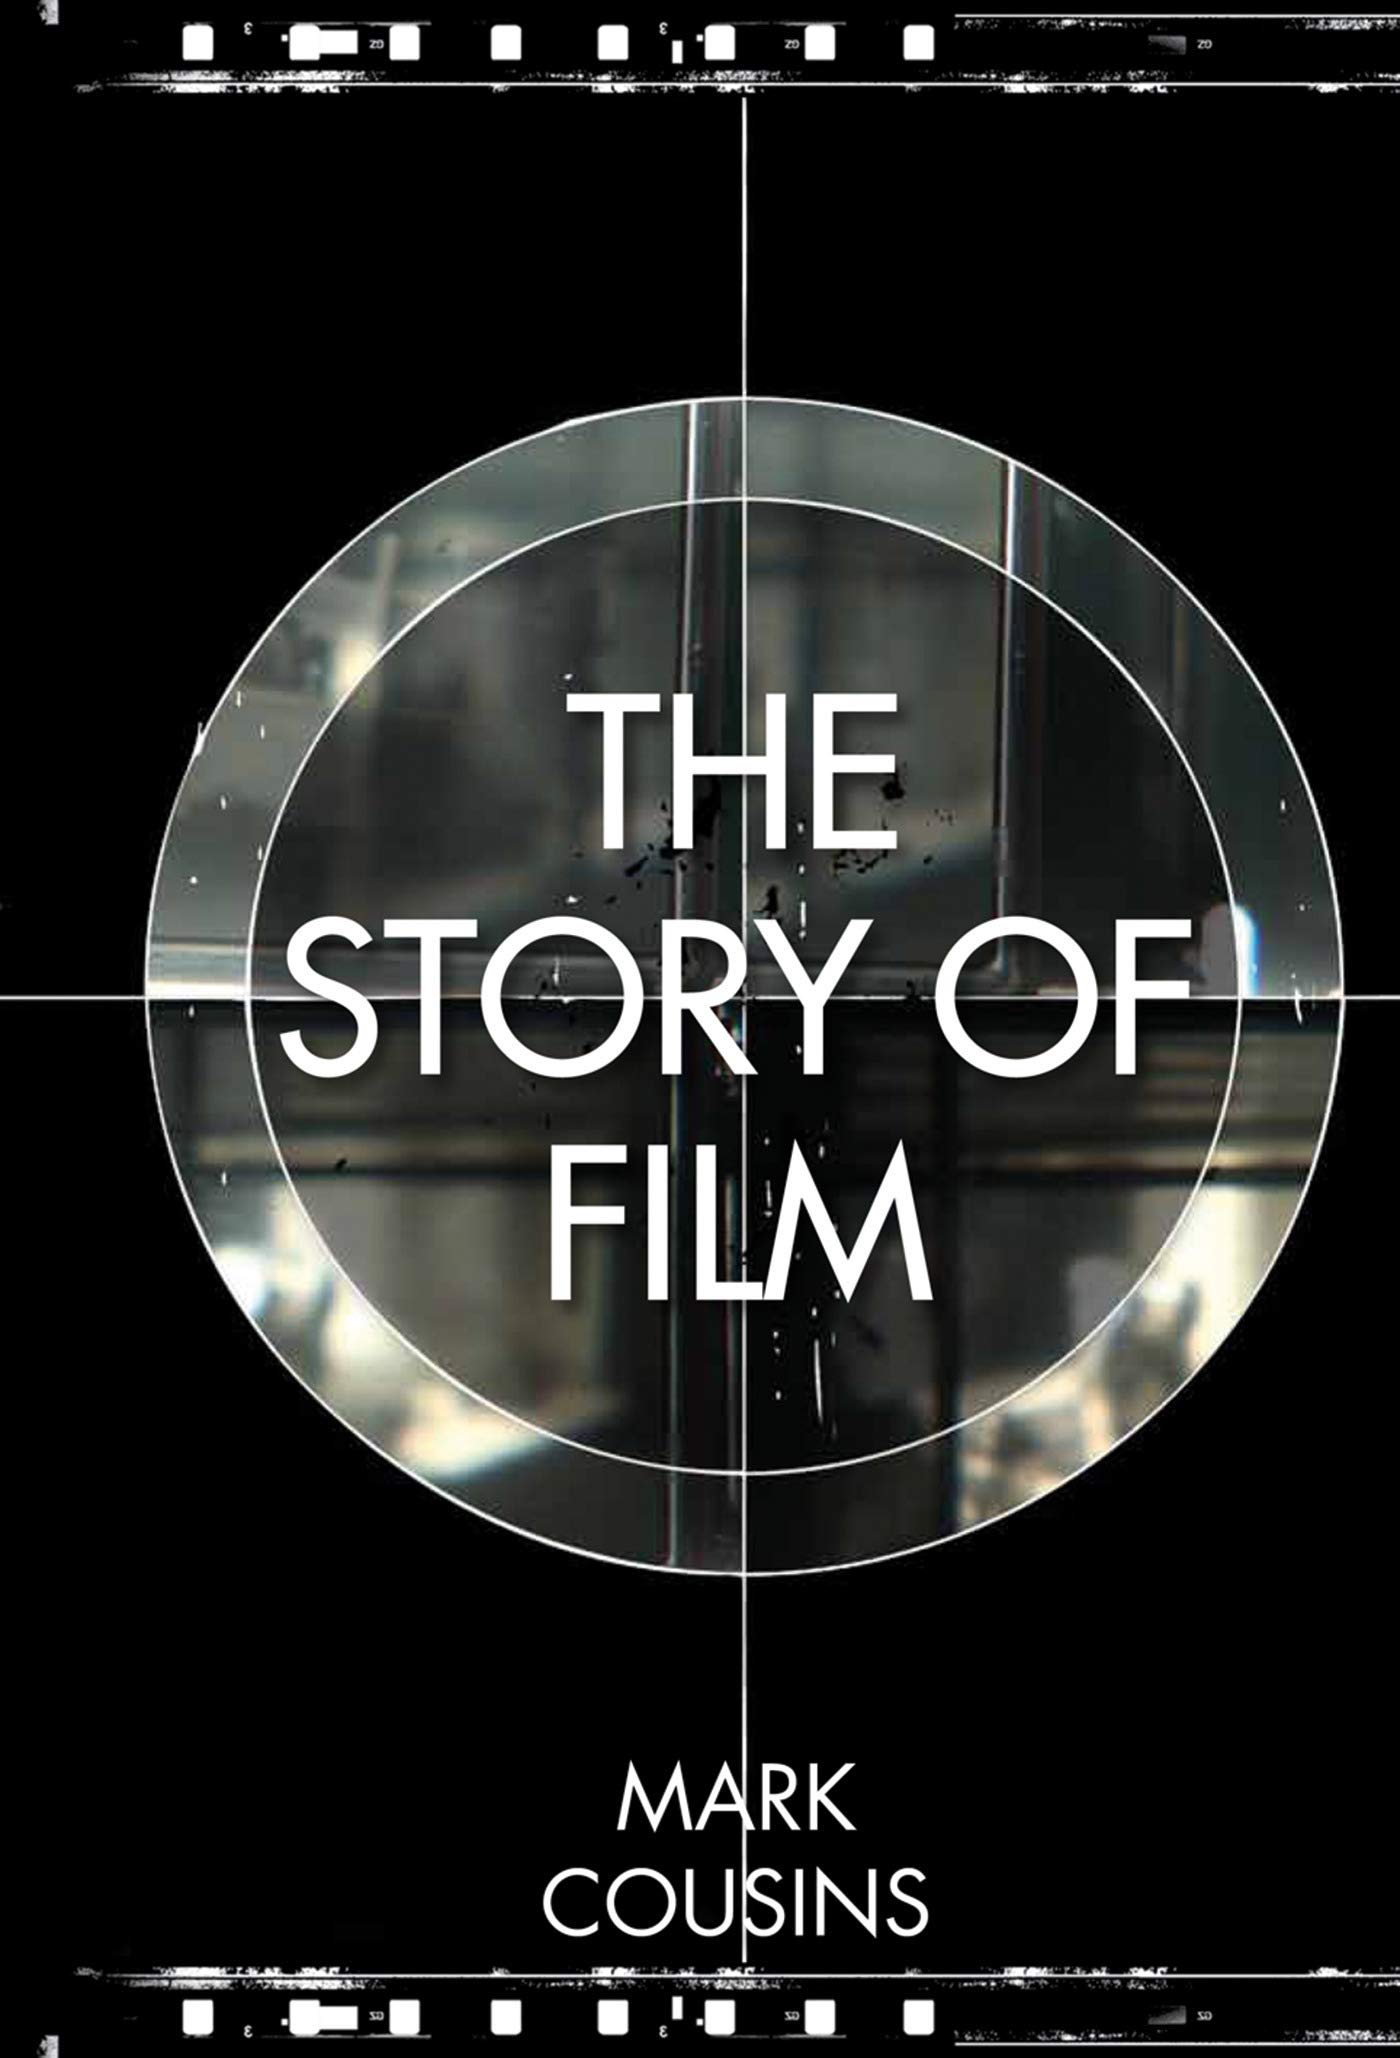 The Story of Film by Pavilion